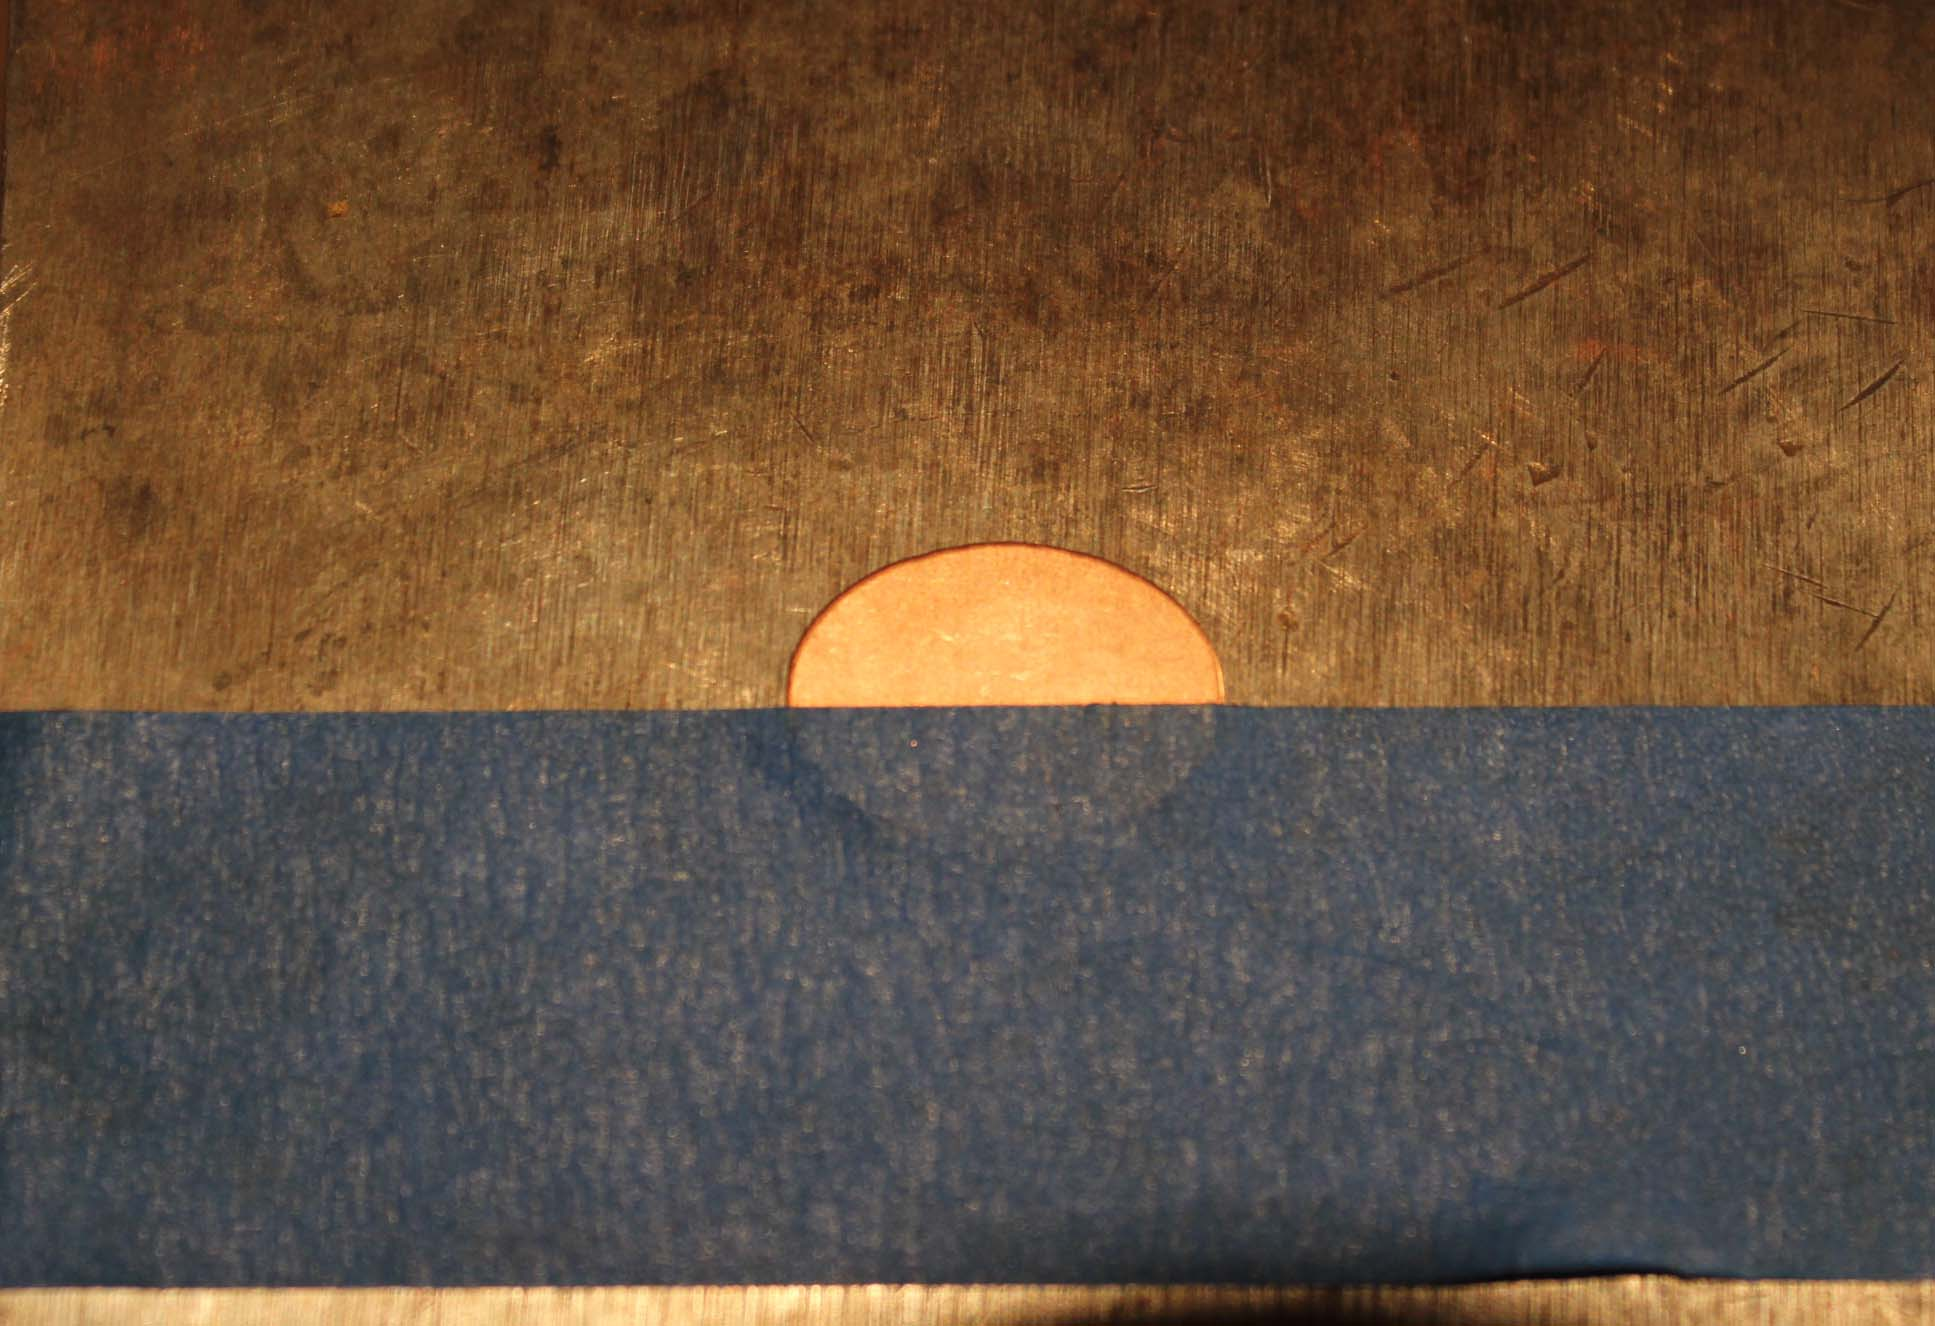 A small oval taped to bench block